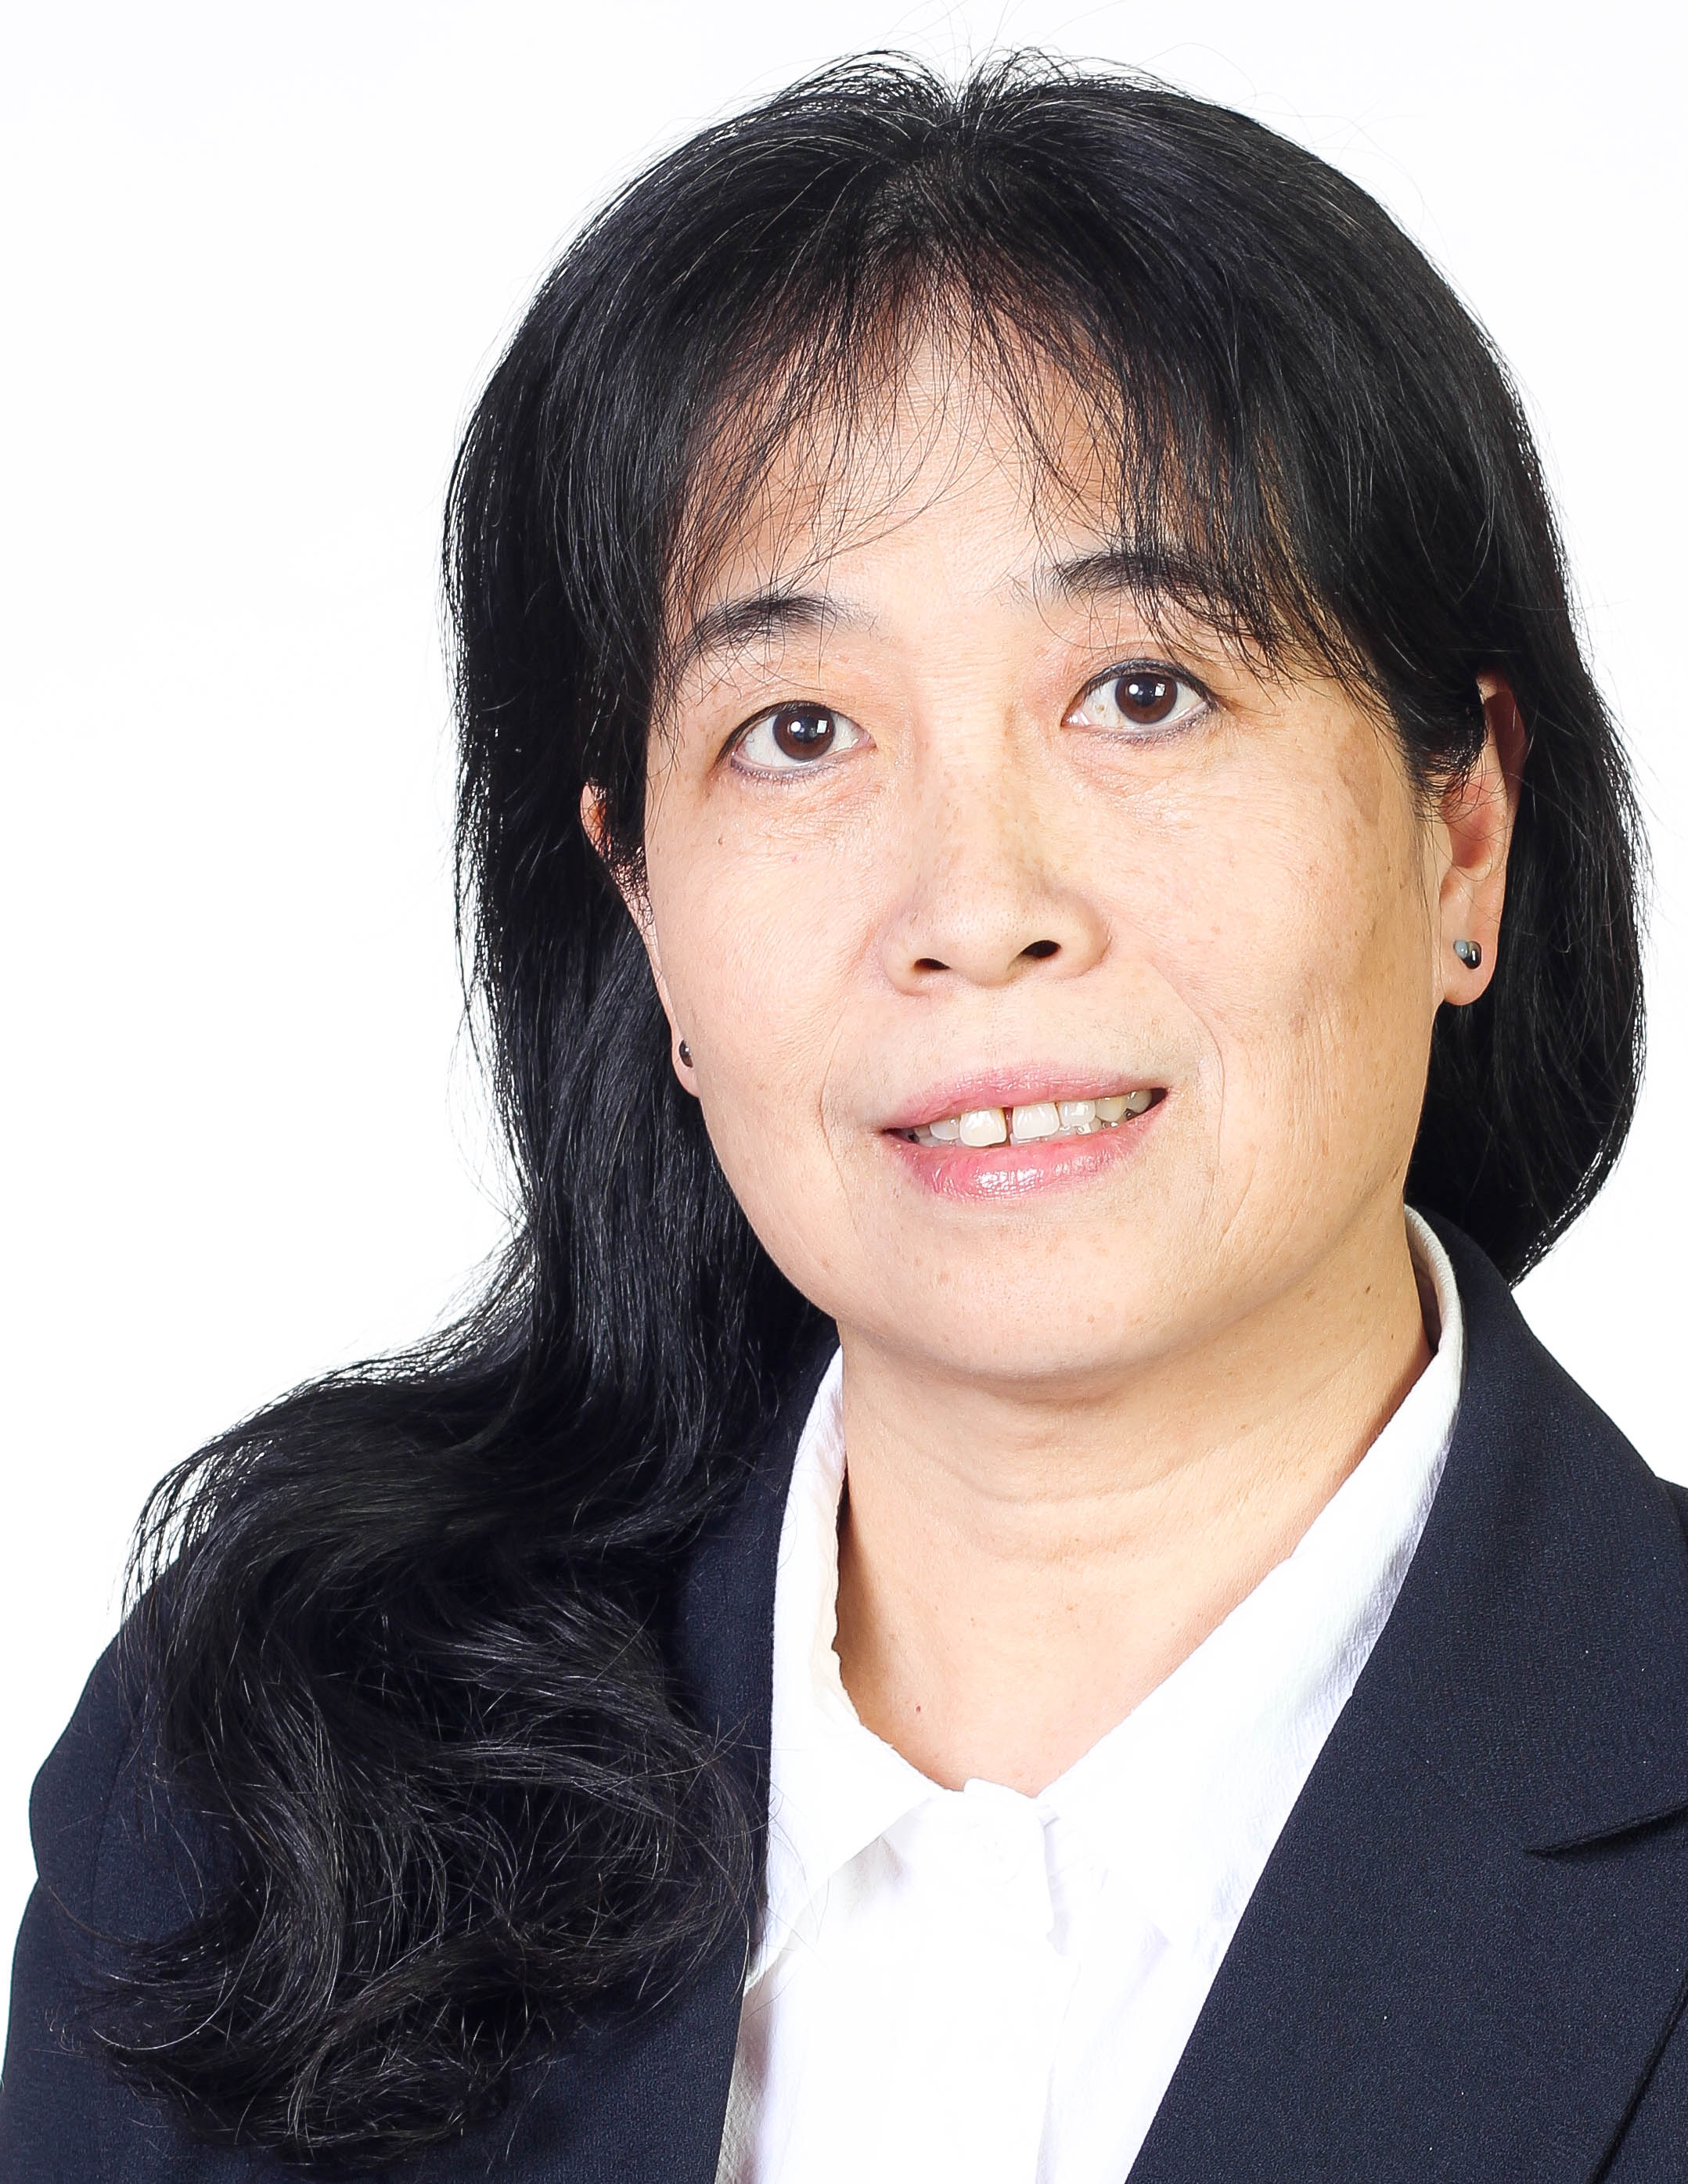 Sue Chen 陳素雲 - Listing Specialist, Buyer Specialist - Team LeaderMy clients know that whenever they use my services, they get the absolute best customer service, honest advice and professionalism.My job is to help you realize your real estate dreams, while keeping your interests firstI am a native of Taiwan, I immigrated to Canada at the age of 21 and started a family restaurant in Hamilton, Ontario.I have over 30 years of entrepreneurial experience gained from running my restaurant business which then sparked my journey into the real estate business.When I am not working(which is rare) I am spending time with my 4 boys, watching netflix or walking my 2 fur babies: Molly & Nini.I would love to meet you and have a chat!REALTOR® is my job title, but being honest with you and always having your interests first is my job.